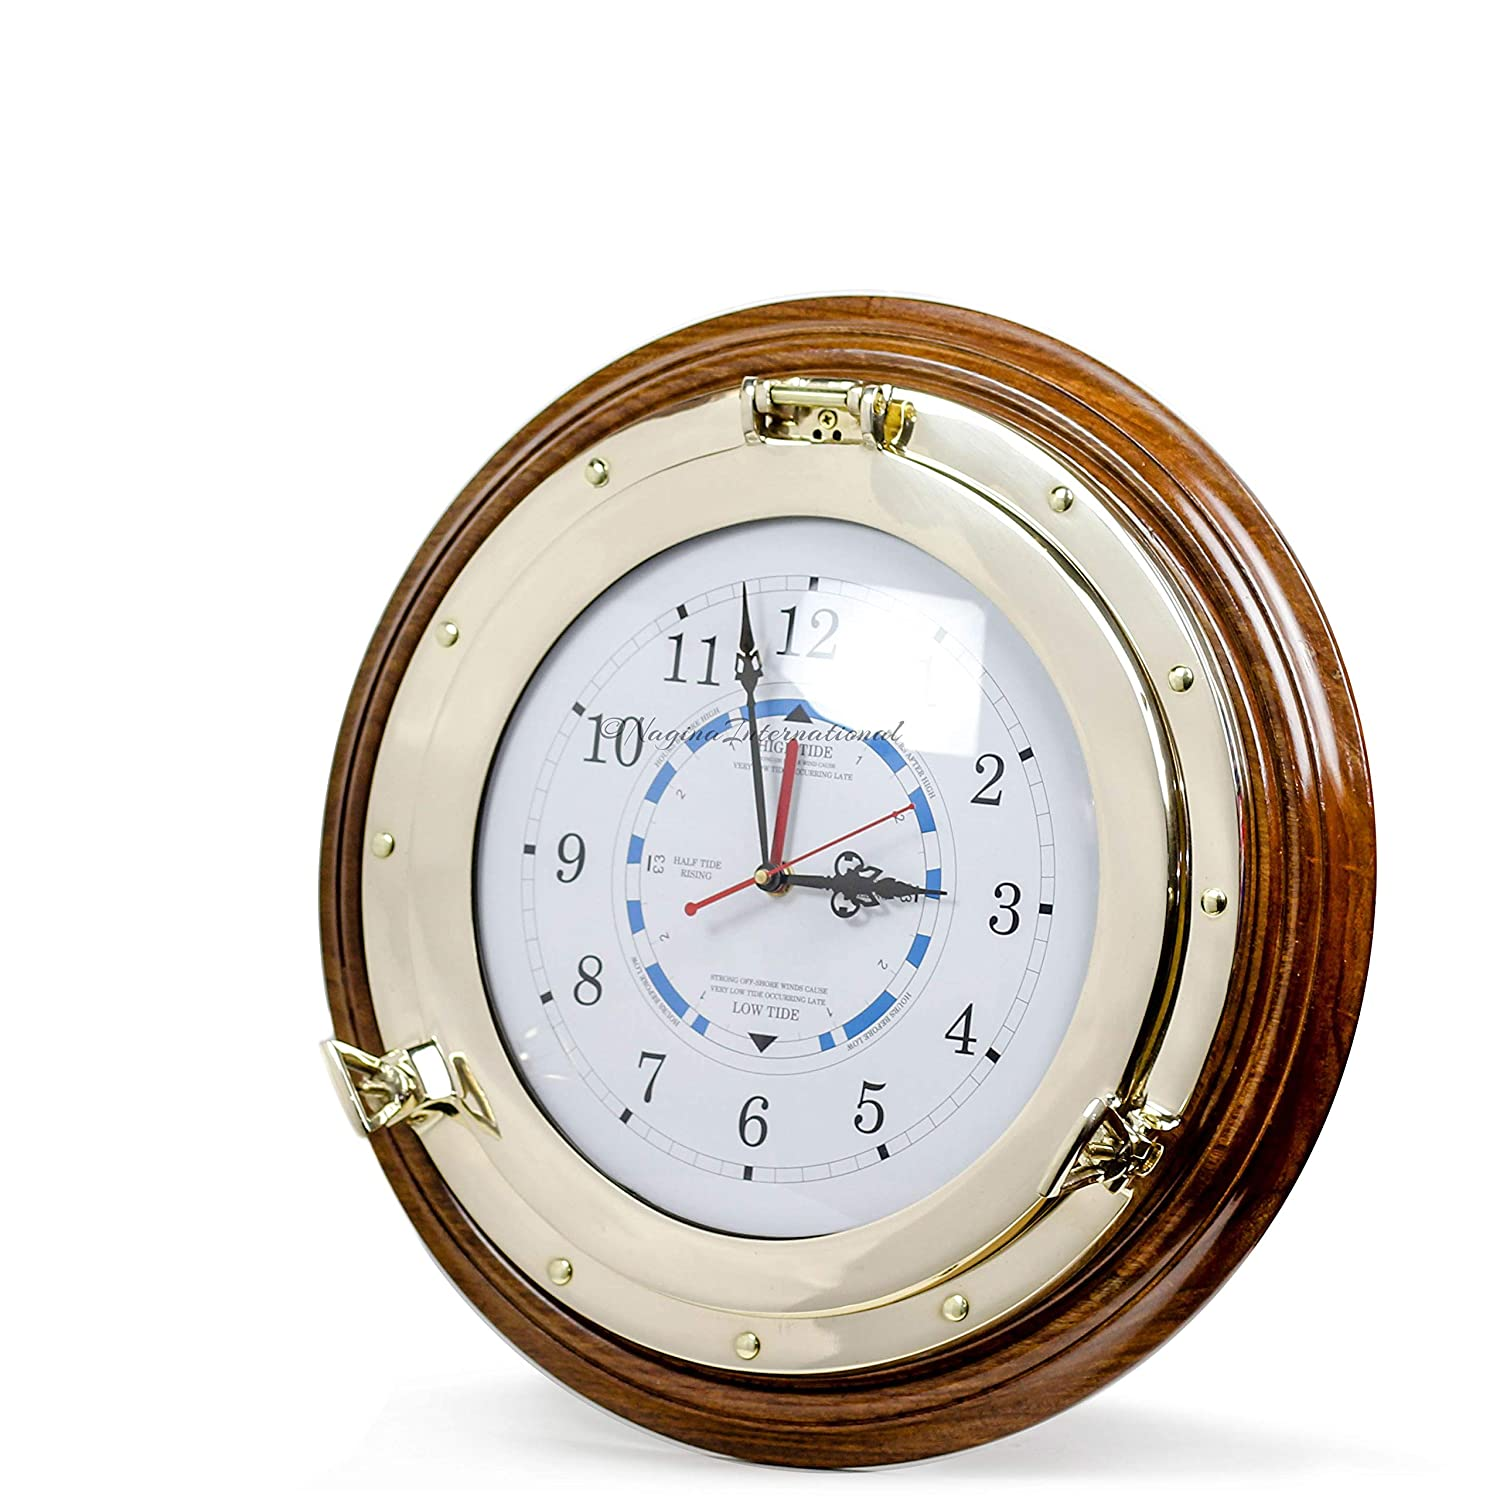 Nagina International Nautical Time Tide Clock with Brass Porthole Wooden Base – Captain Maritime Beach Home Decor Gift 16 Inches